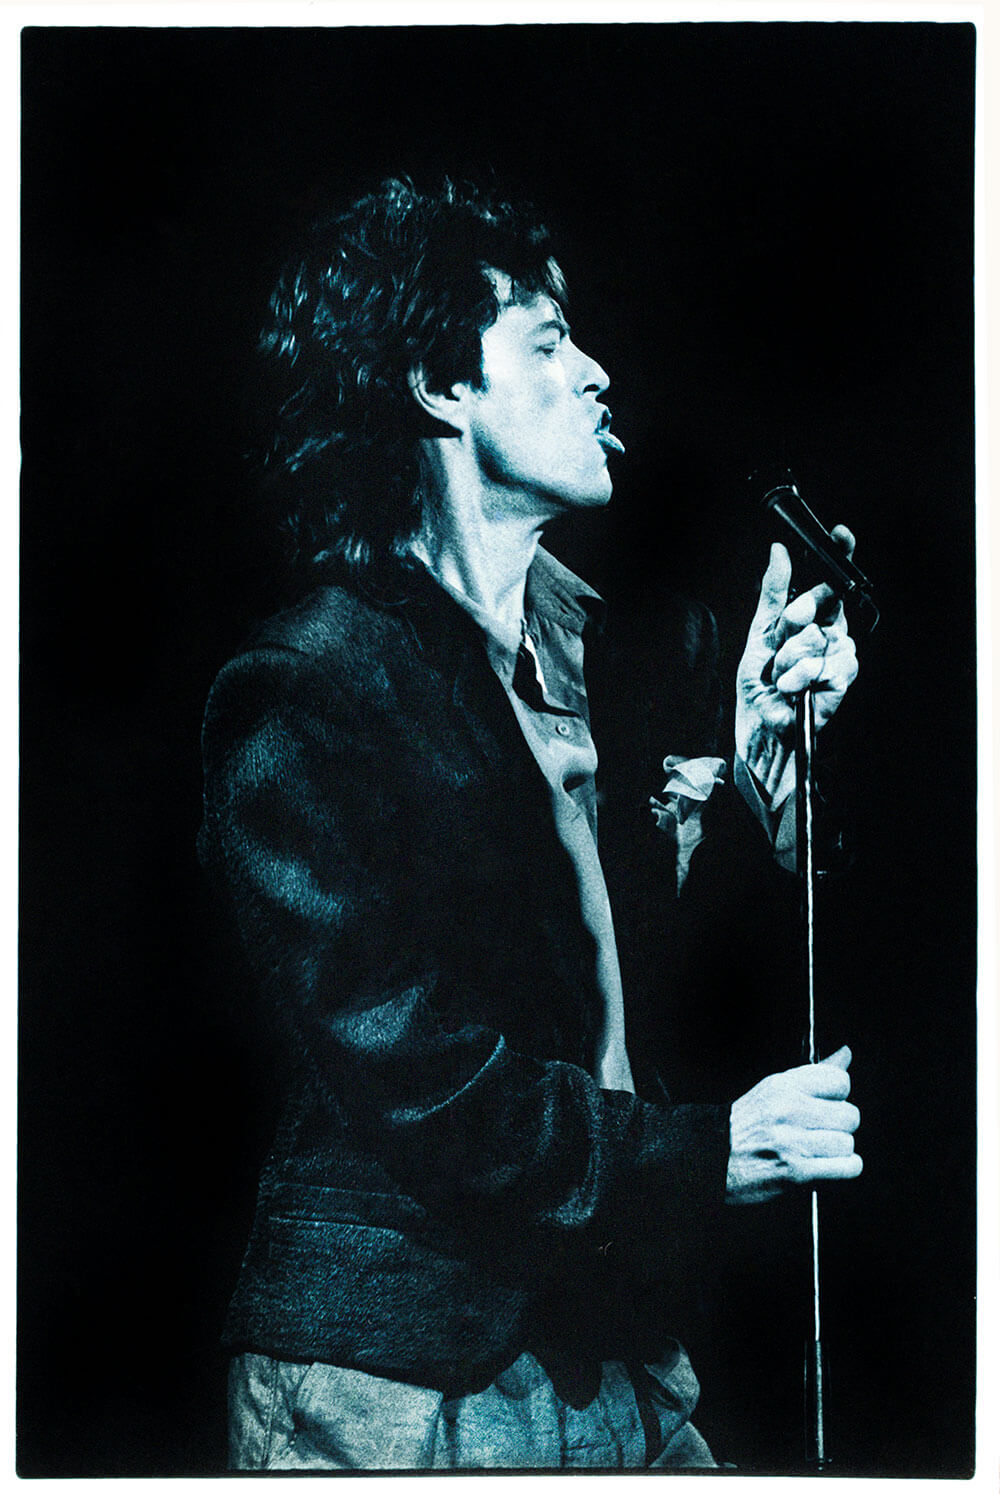 Image of Mick Jagger by Music Photographer Wendy McDougall